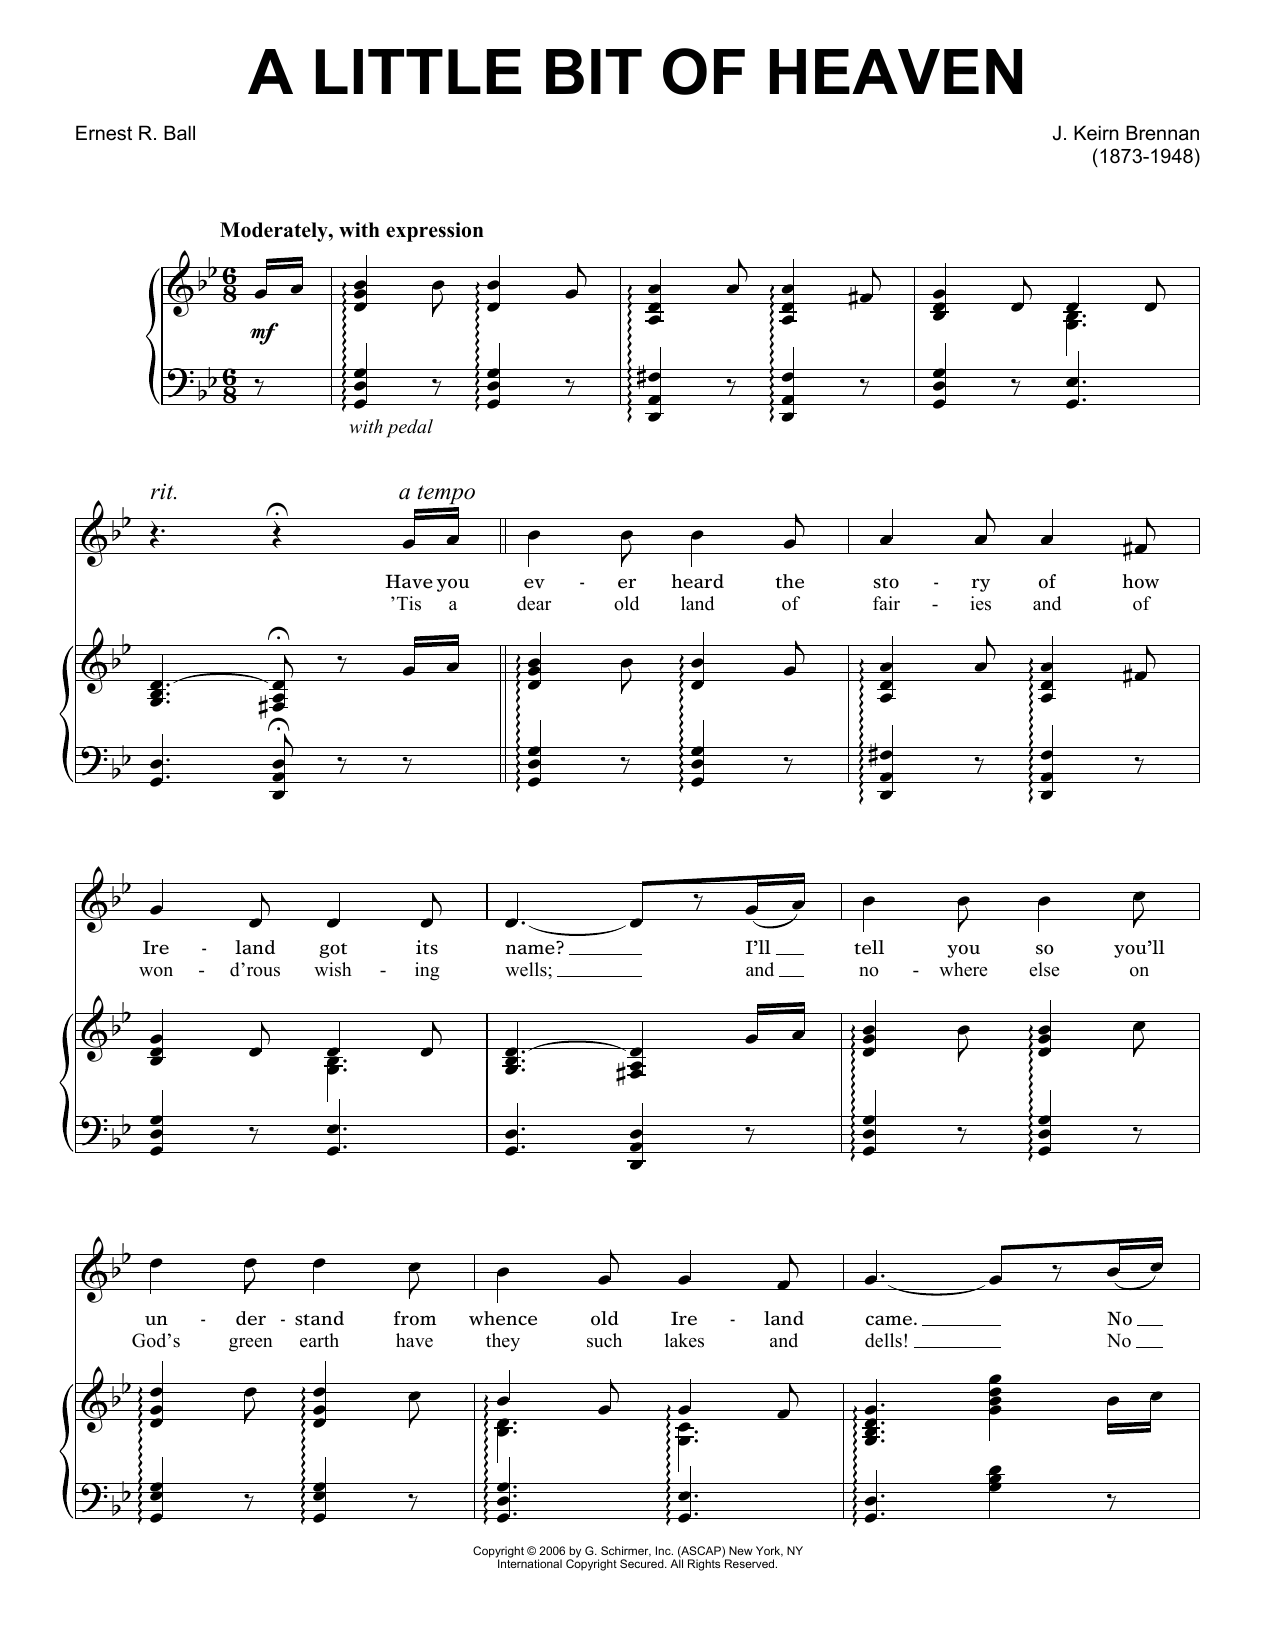 J. Keirn Brenan A Little Bit Of Heaven sheet music notes and chords. Download Printable PDF.